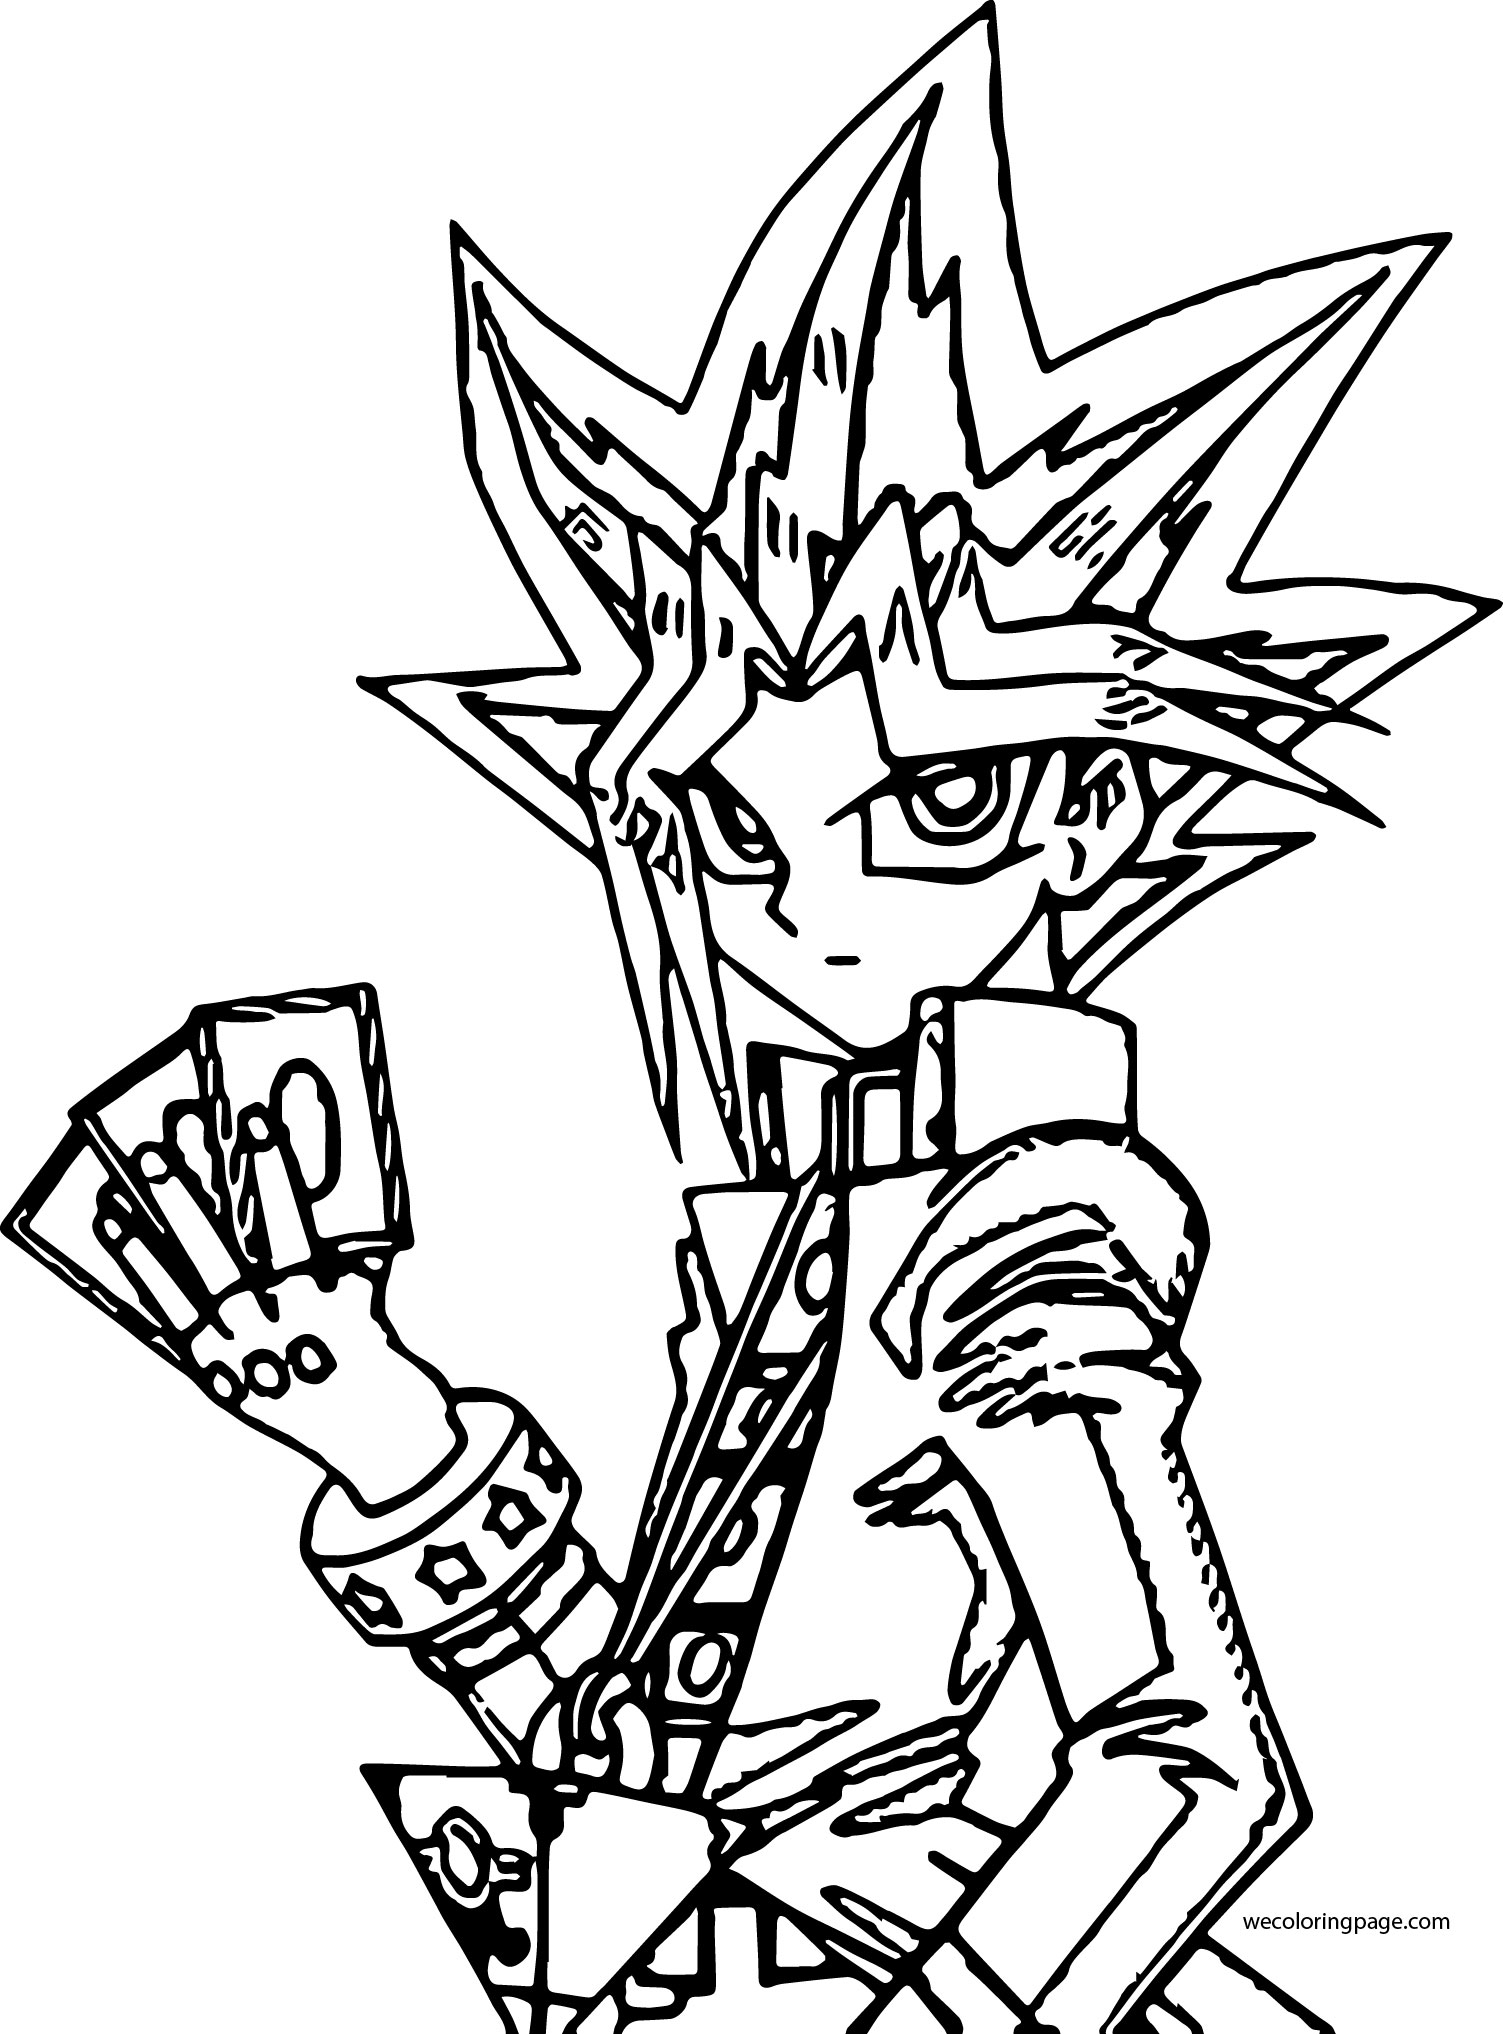 Yugioh Coloring Pages | Free download on ClipArtMag